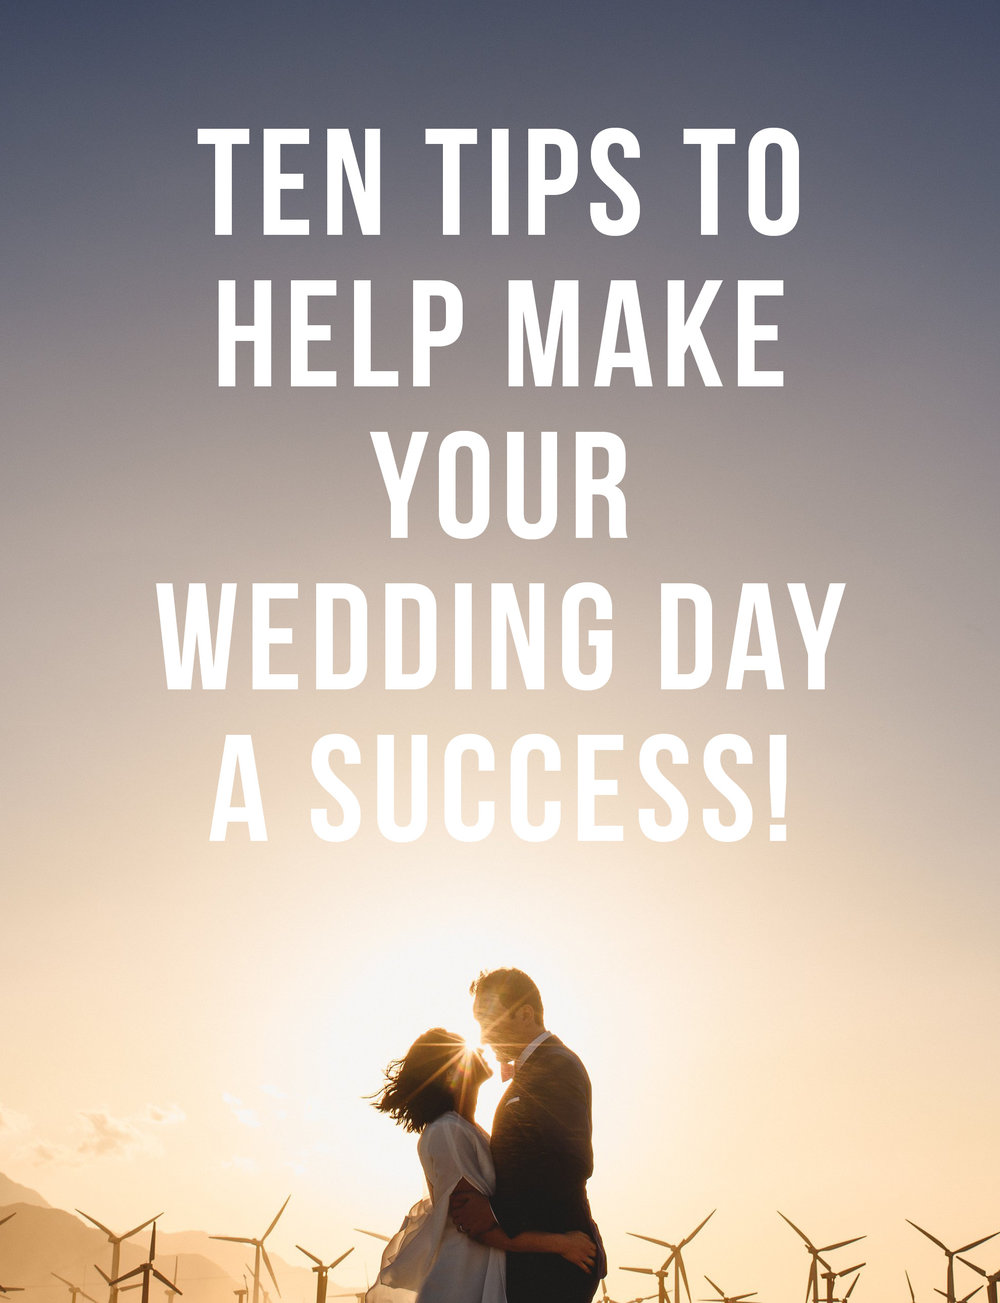 Ten Tips To Help Make Your Wedding Day A Success!.jpg